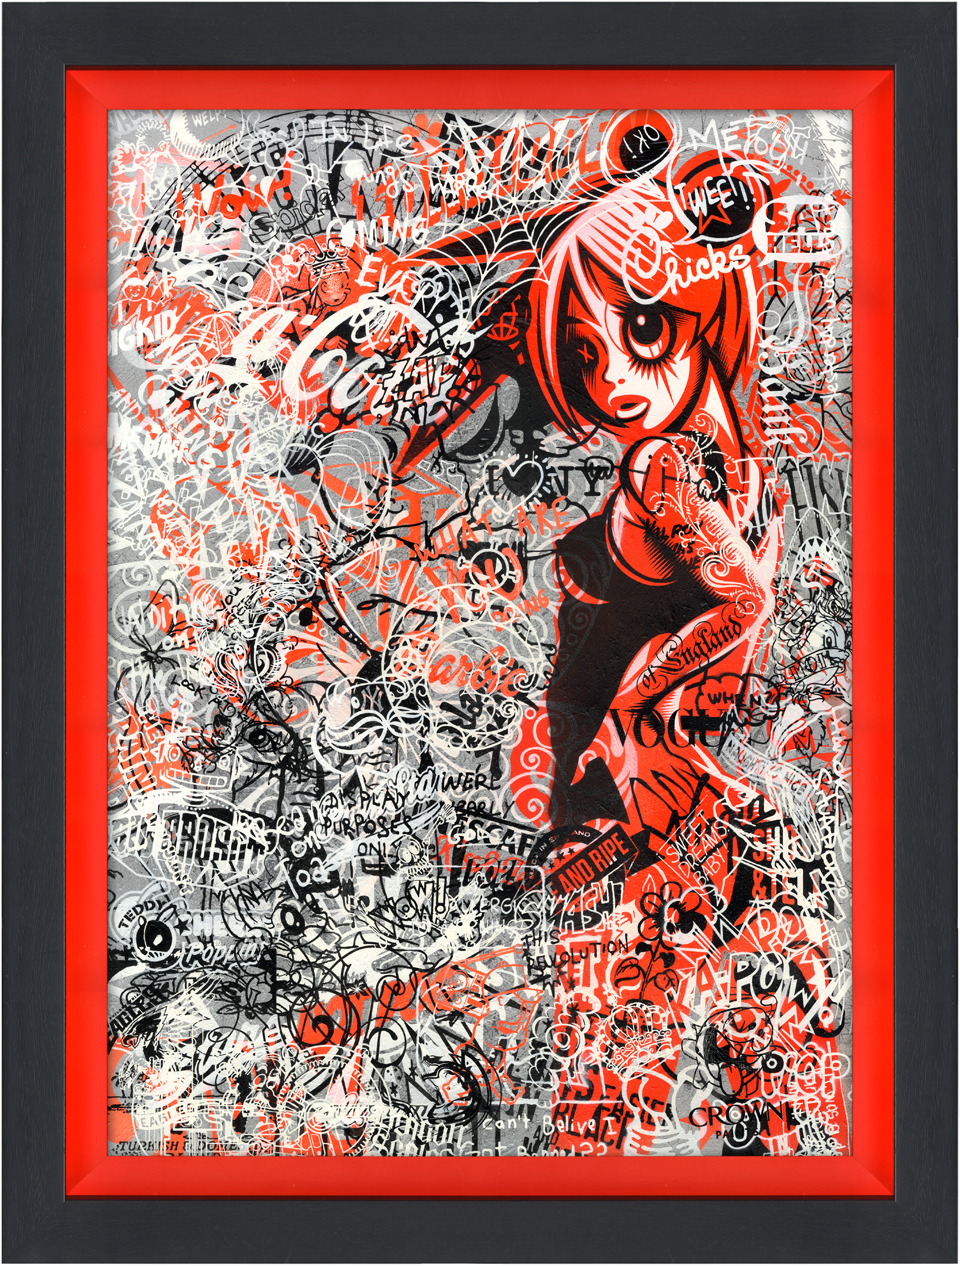 Urban art contemporary pop art prints originals by rourke van dal urban graffiti uk art gallery